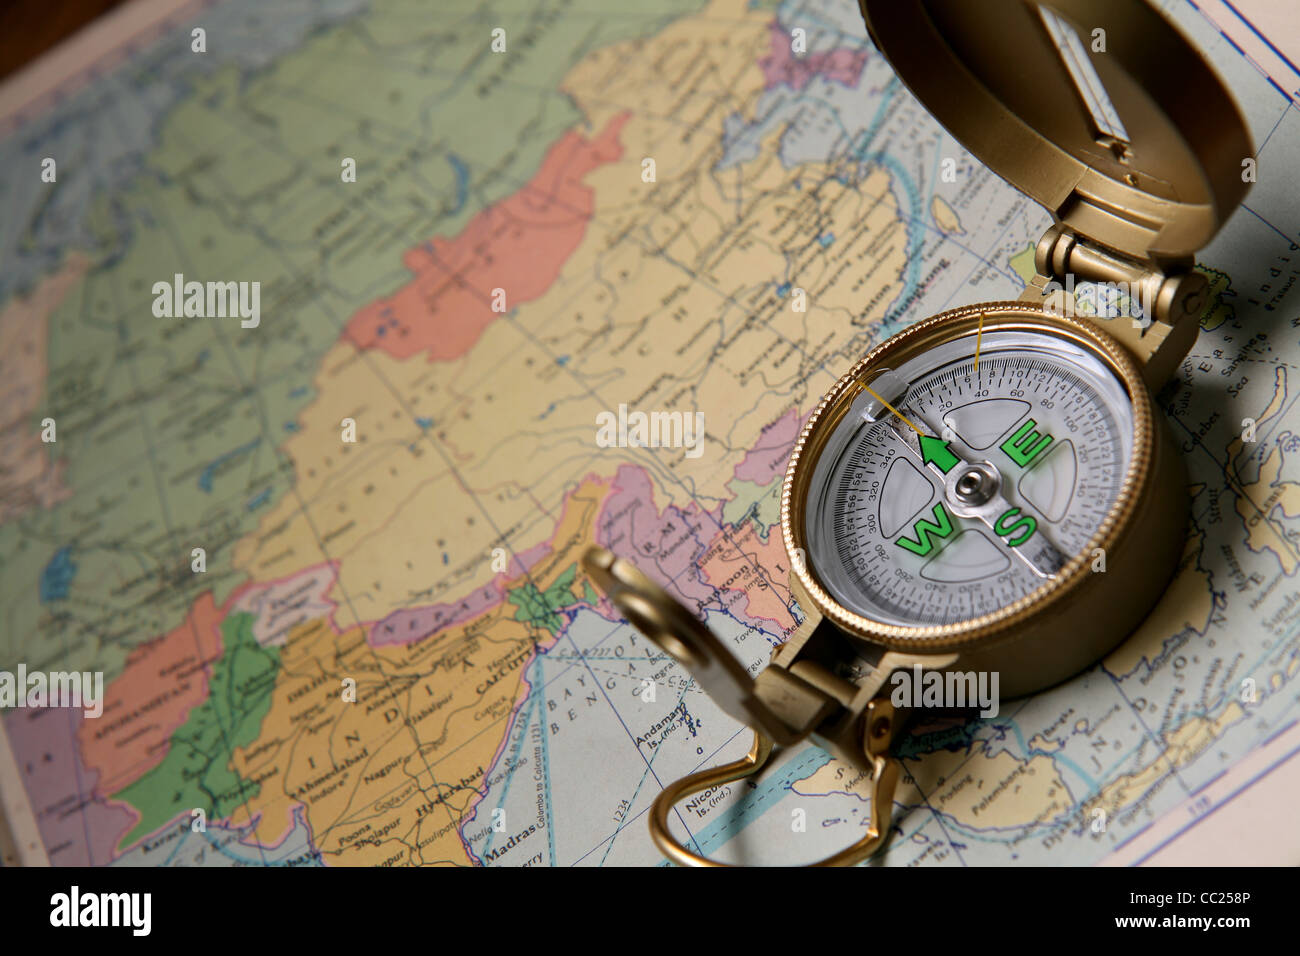 A compass on the world map of the atlas. - Stock Image